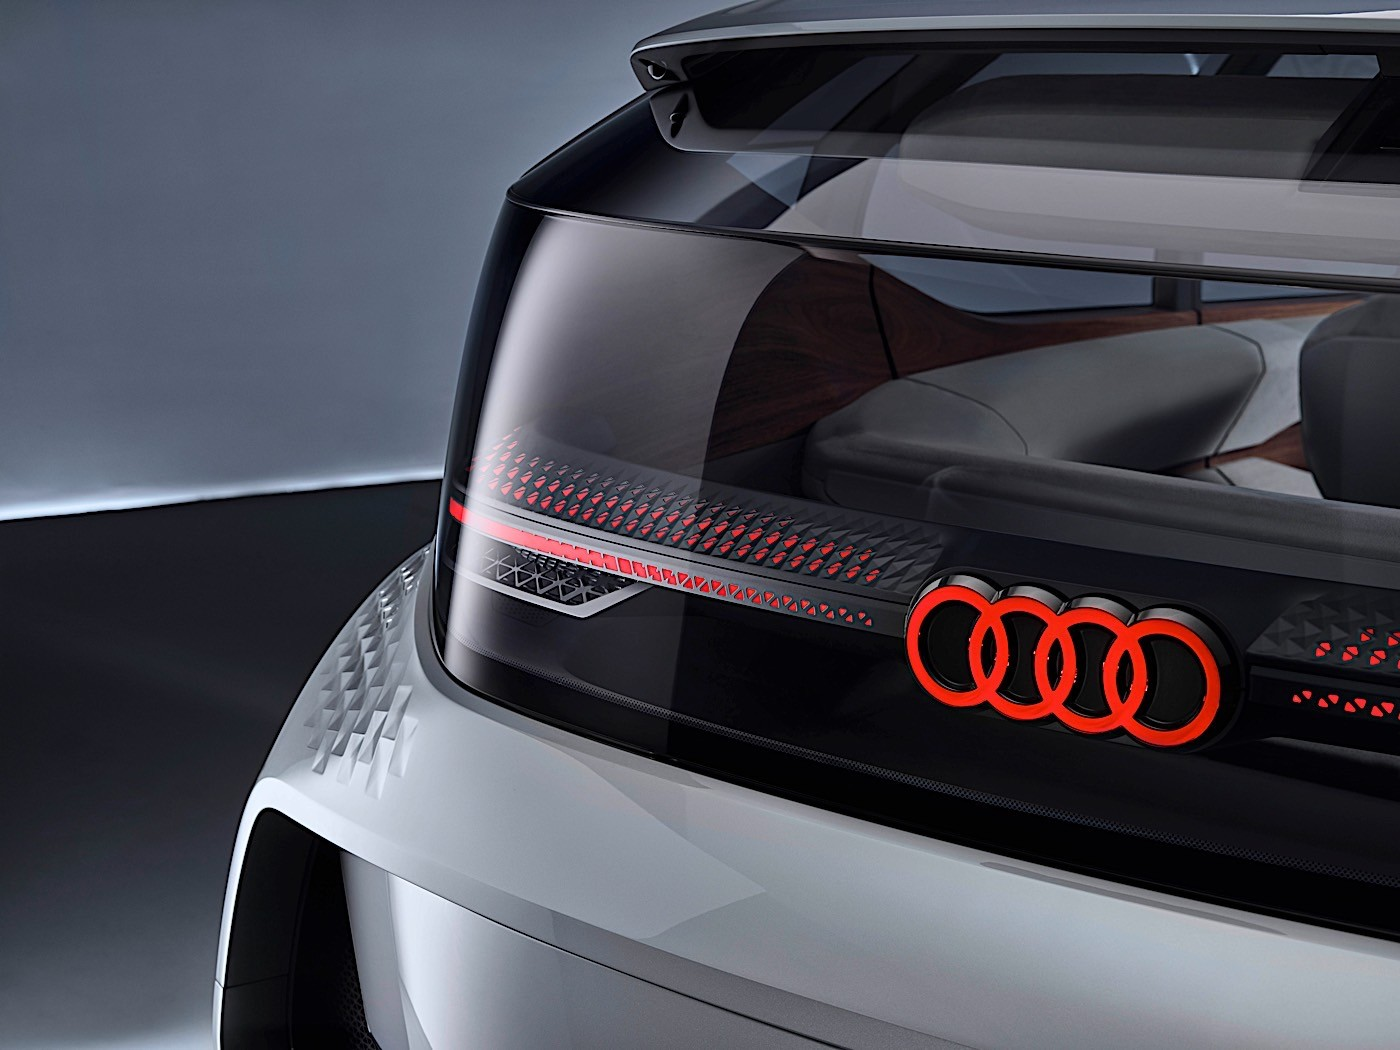 9 Seater Car >> Audi Shows Artificial Intelligence Car with Eye-Controlled ...